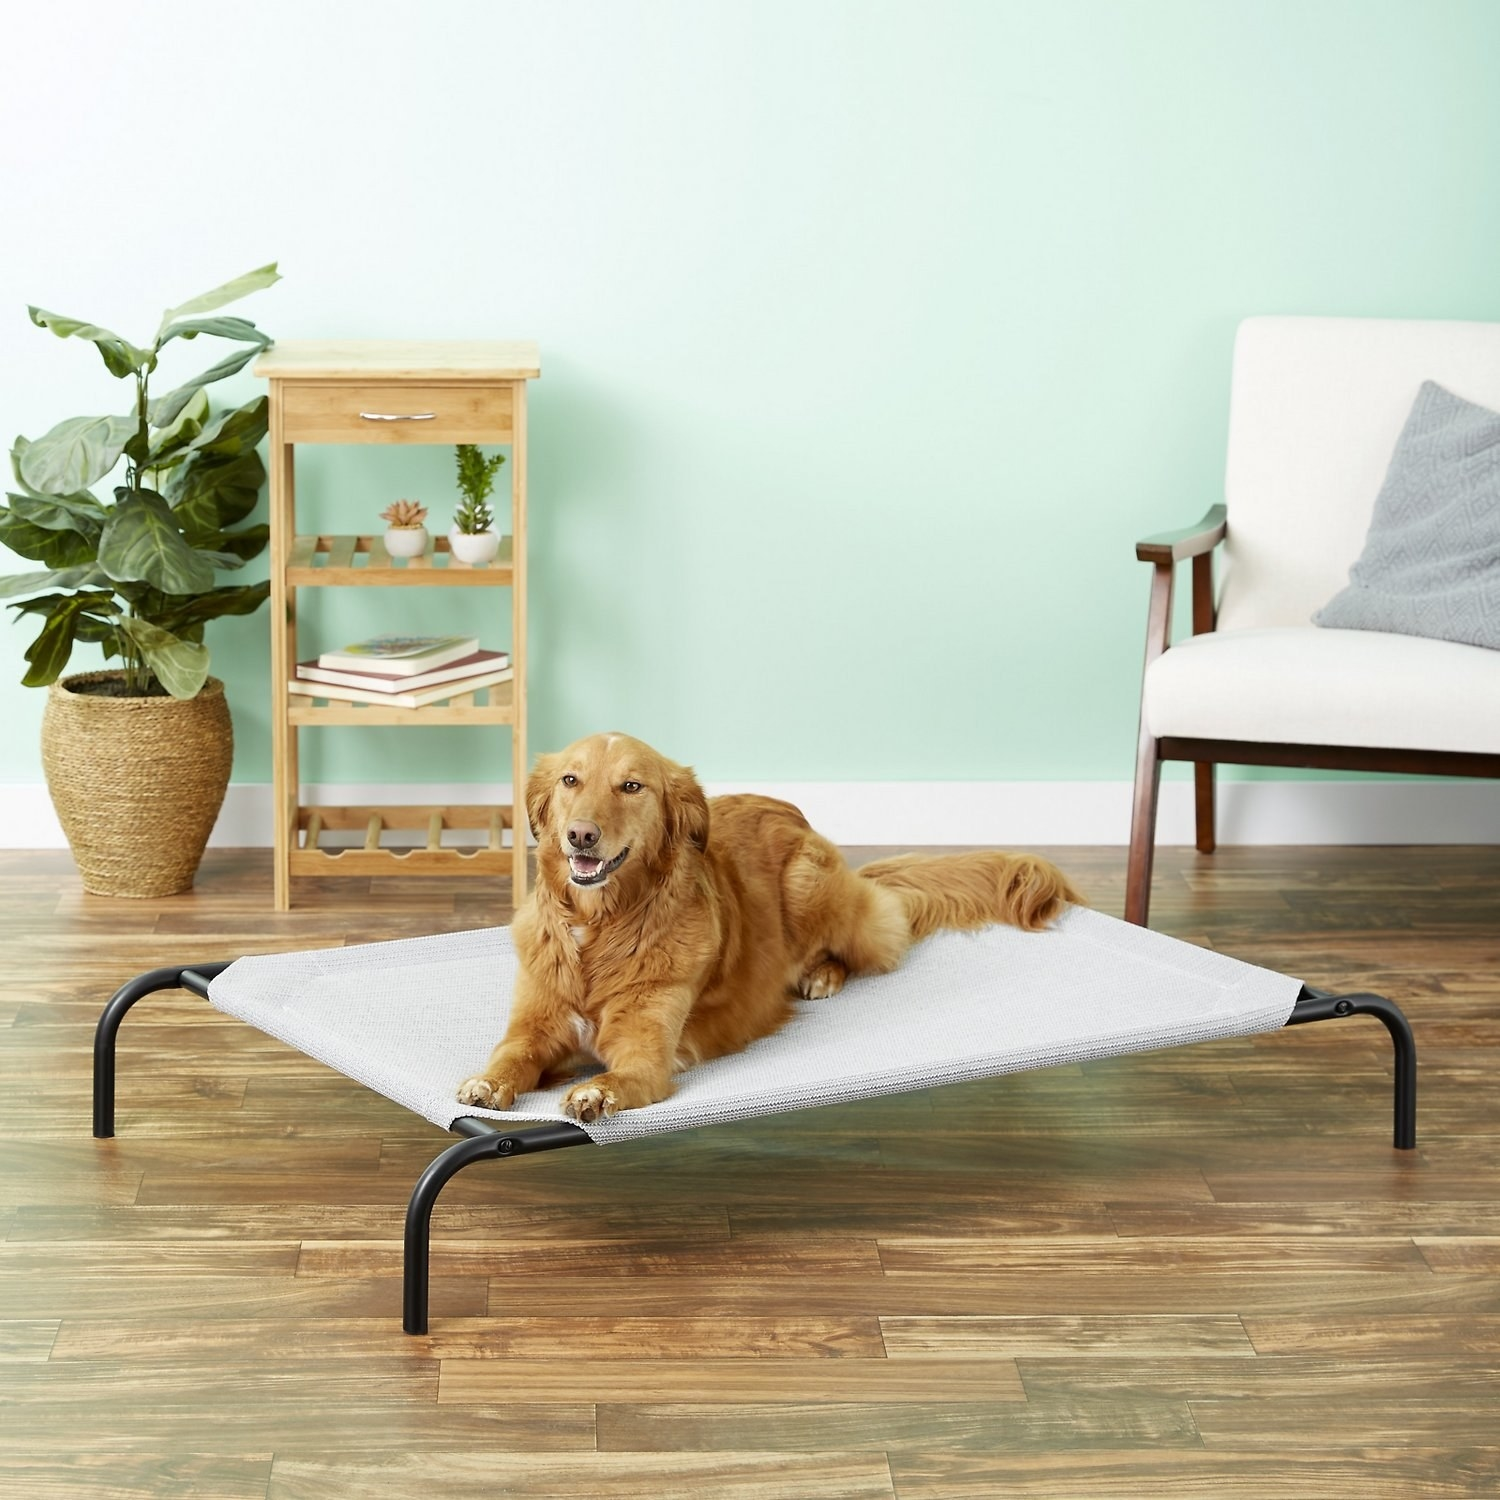 An elevated dog bed with a sturdy fabric stretched over the piped frame